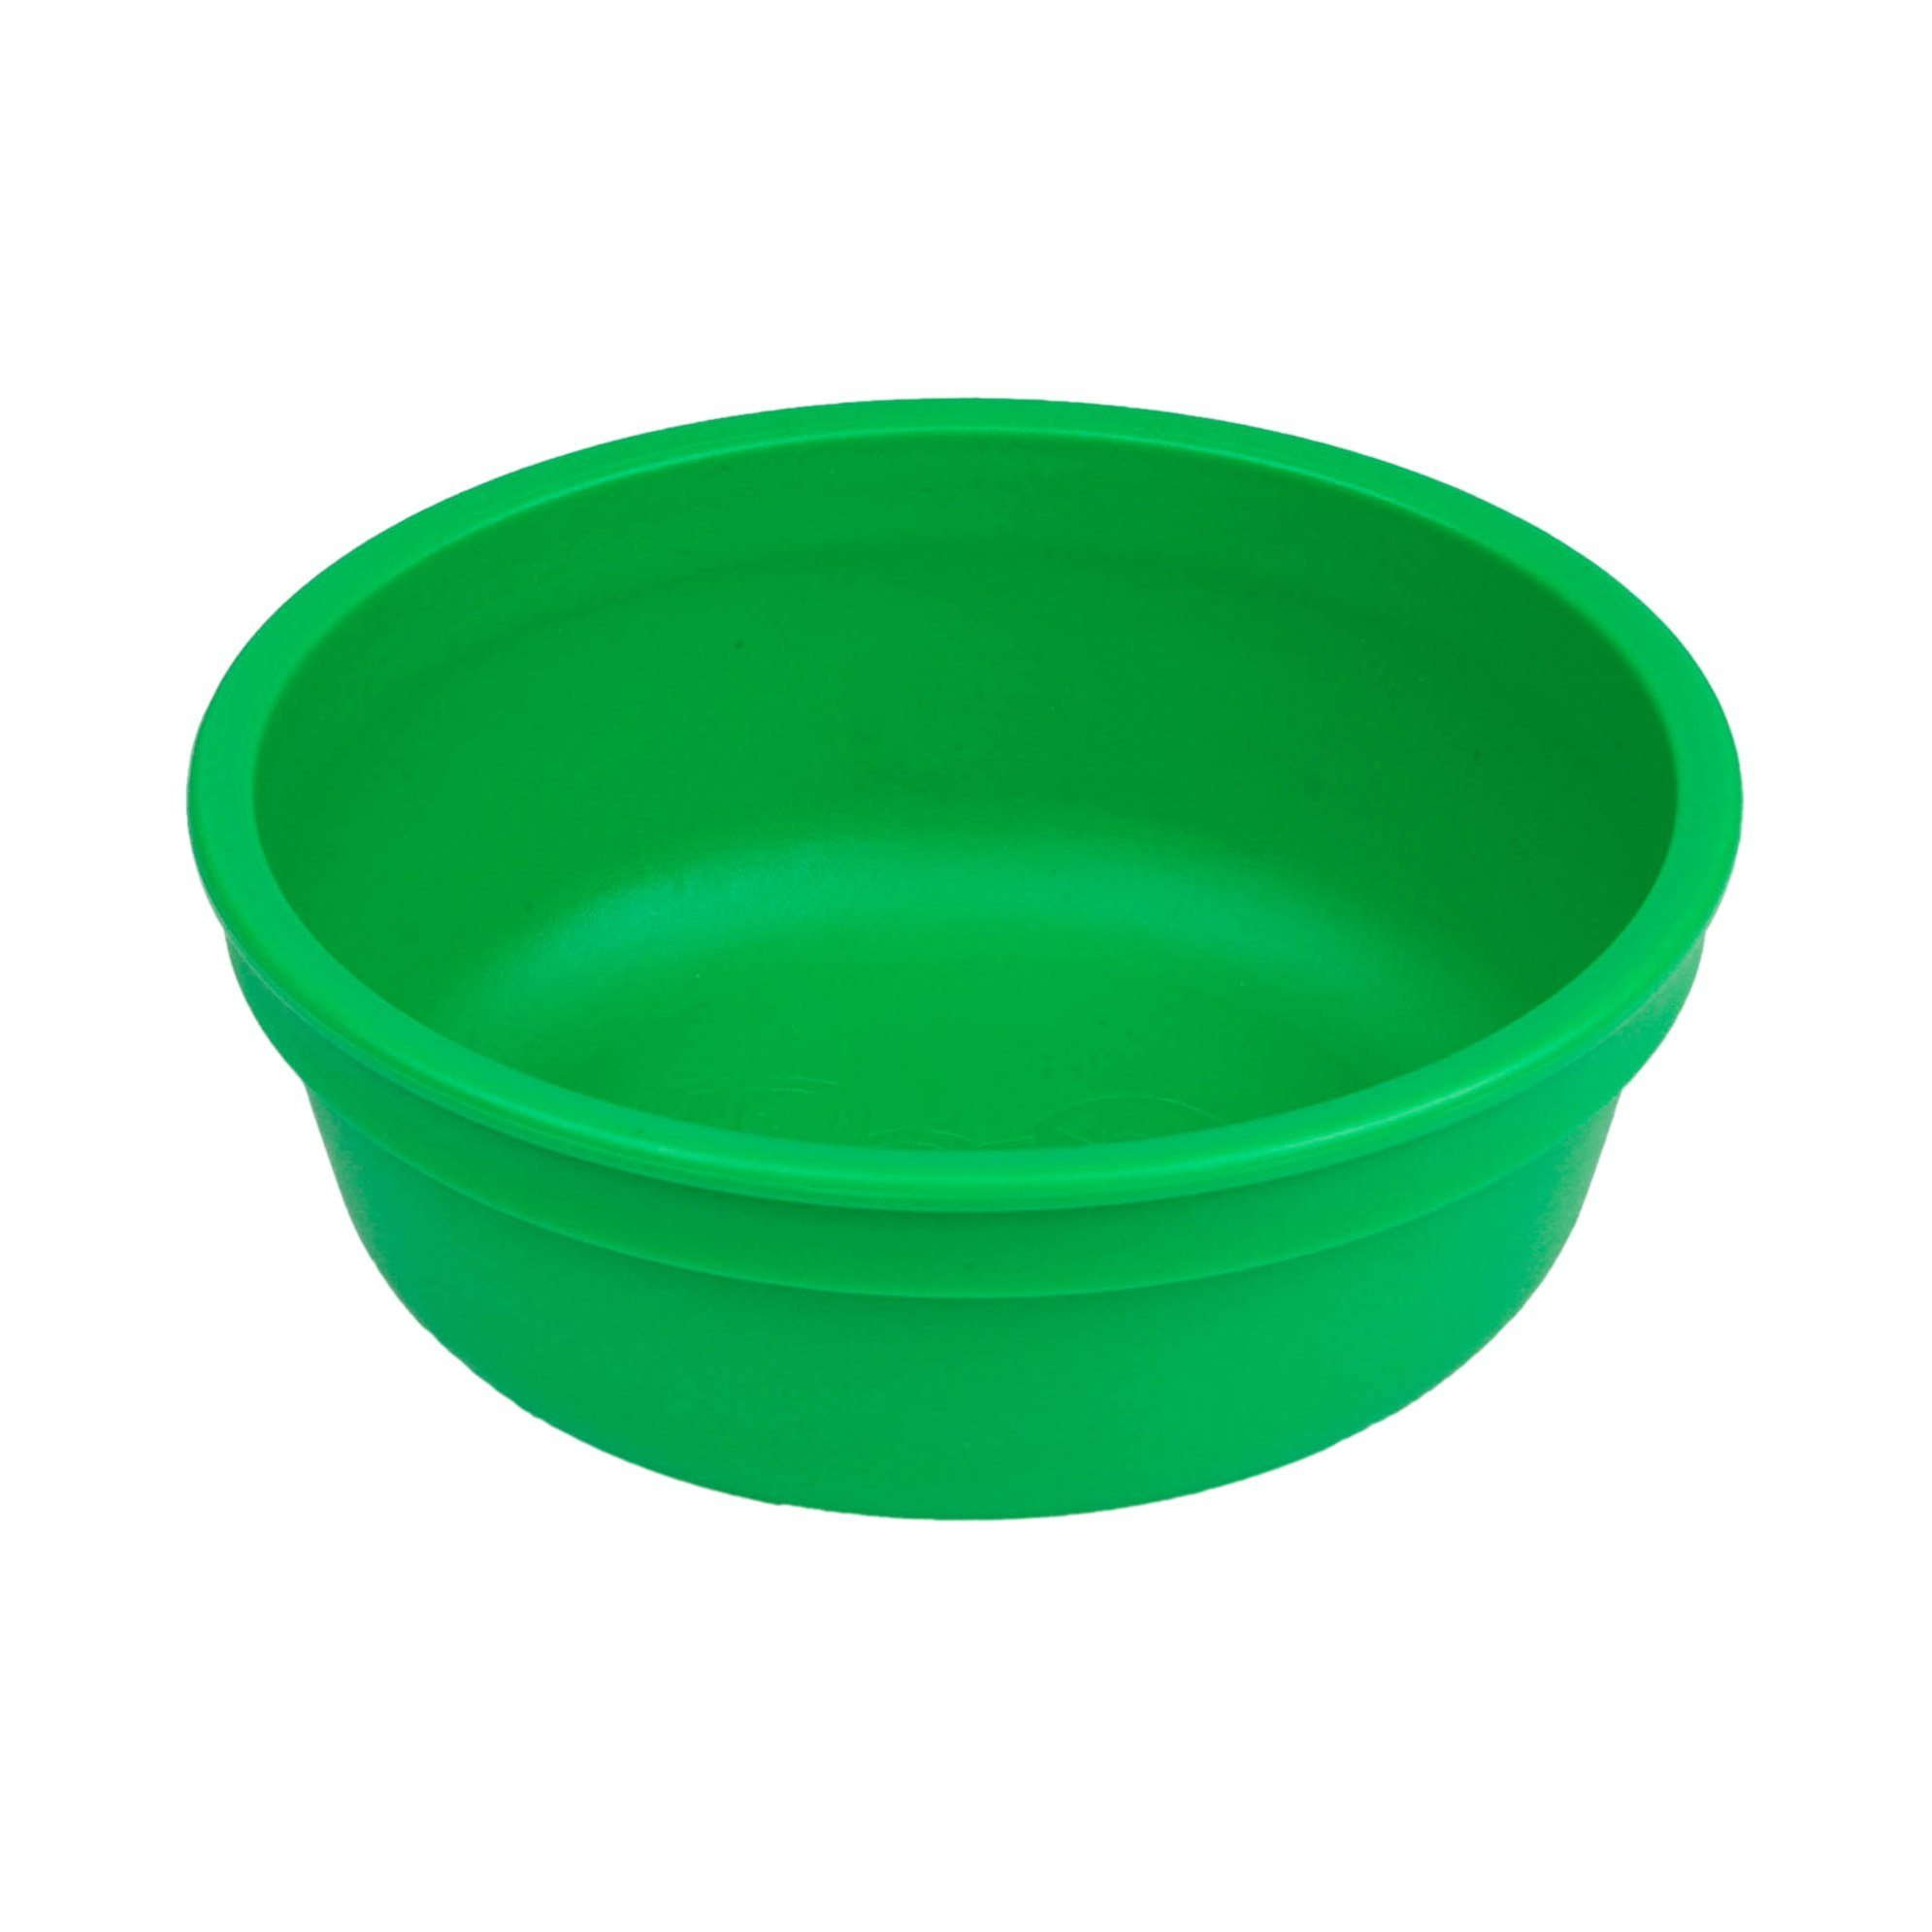 Bowl (Kelly Green)